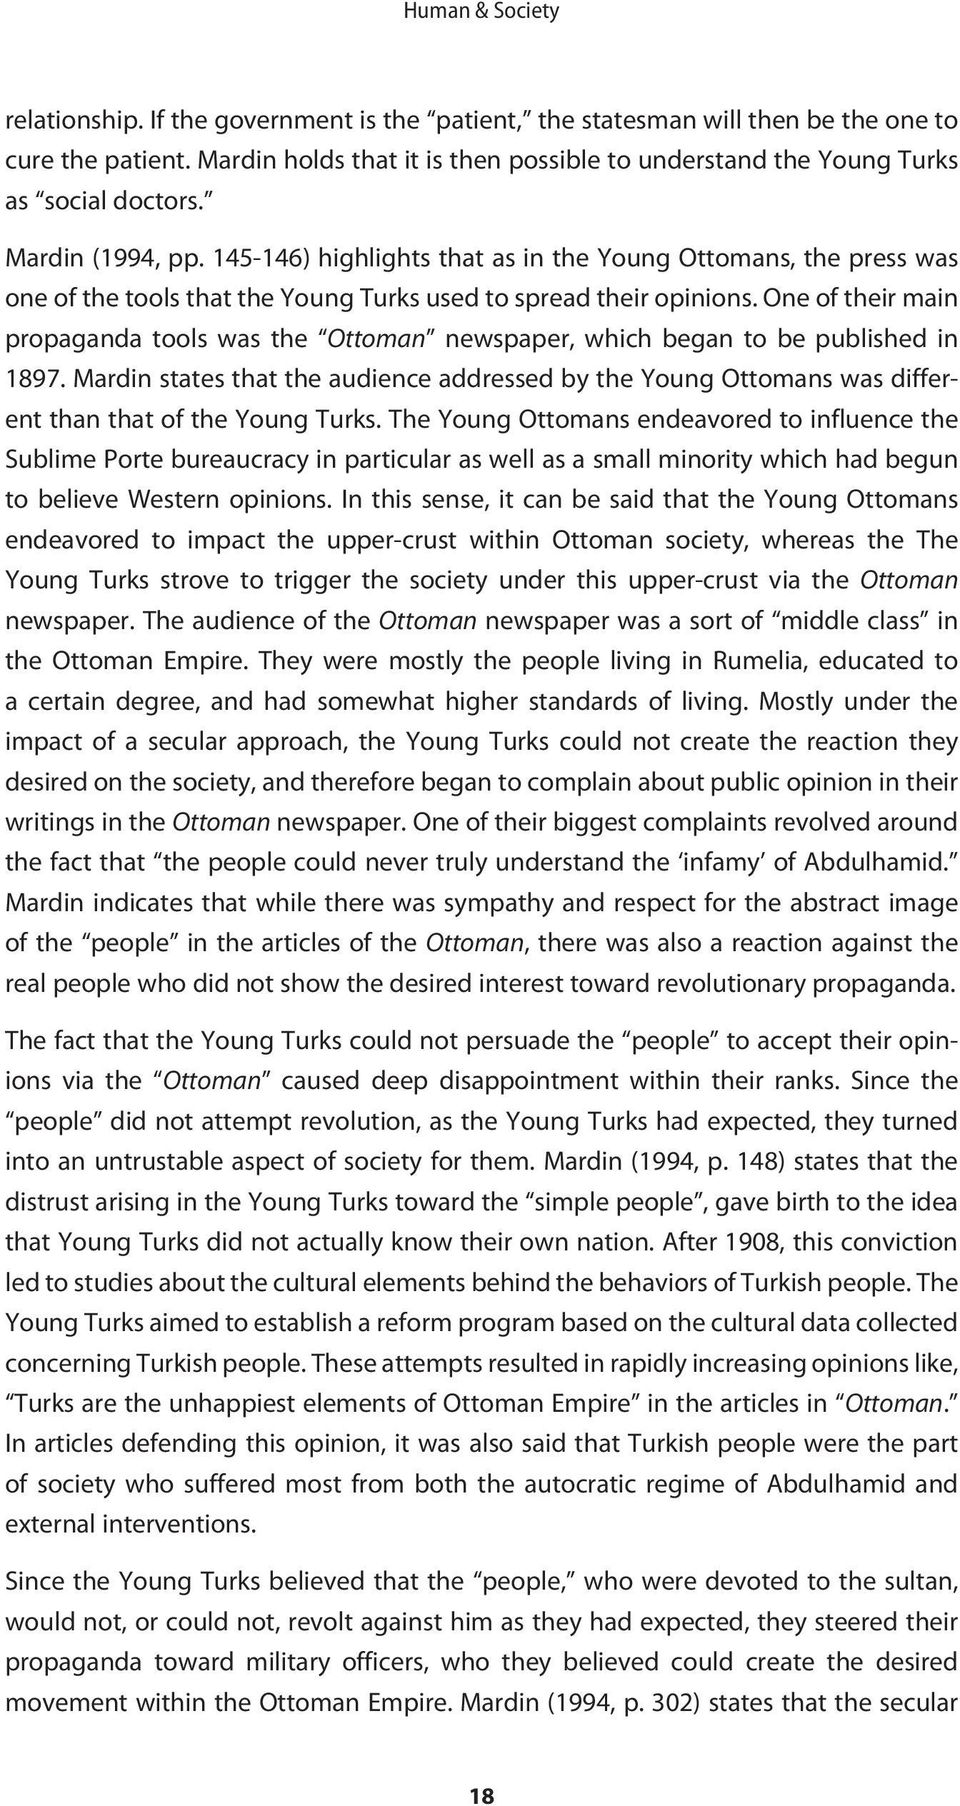 145-146) highlights that as in the Young Ottomans, the press was one of the tools that the Young Turks used to spread their opinions.